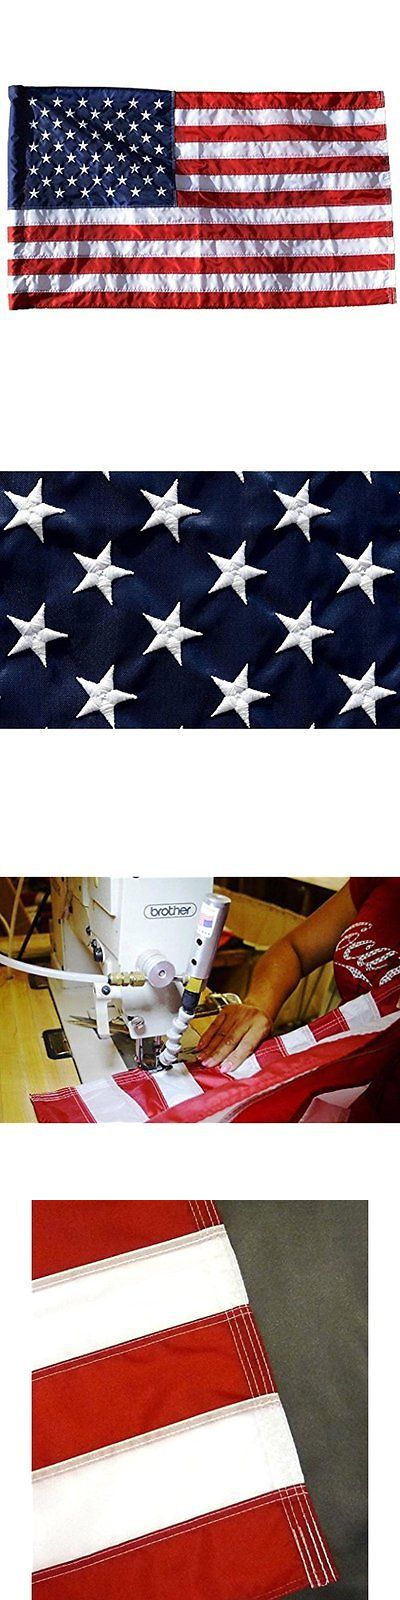 Flags 43533: 2.5 X4 Us Flags American Flag (Pole Sleeve) Outdoor Solarmax Nylon Flag Stars -> BUY IT NOW ONLY: $30.57 on eBay!